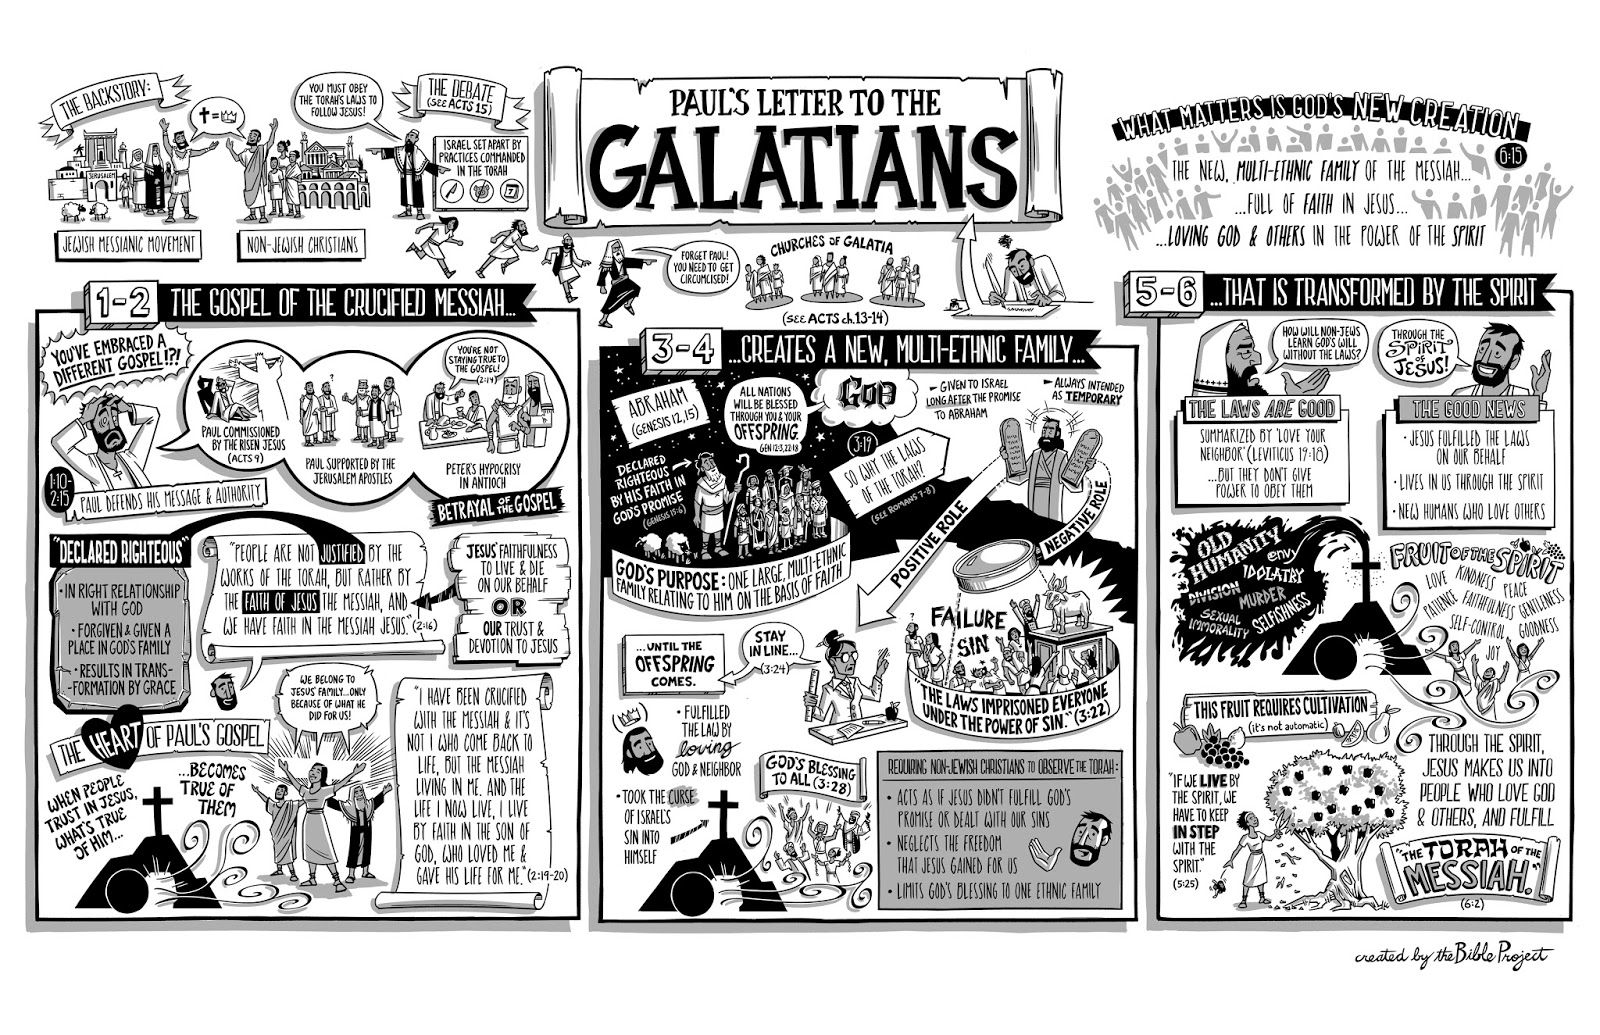 an overview of the book of galatians In the book of galatians, believers learn that the gospel of jesus, not the laws of torah, justifies them, adds them to a multi-ethnic family, and equips them by the spirit to love god and others.